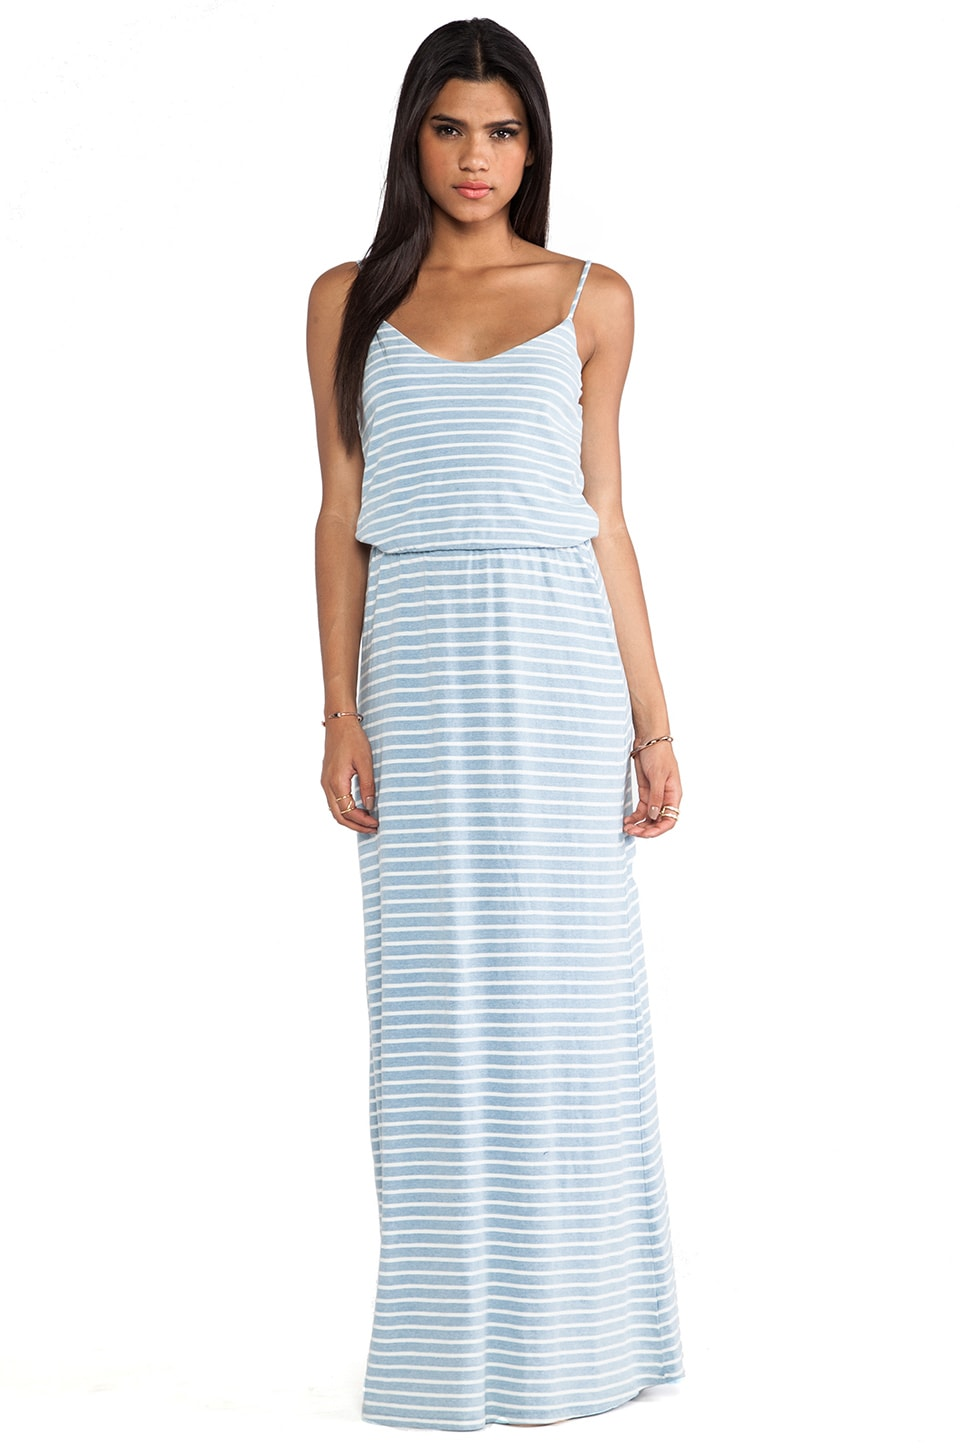 Splendid Indigo Dye Maxi Dress in Light Wash